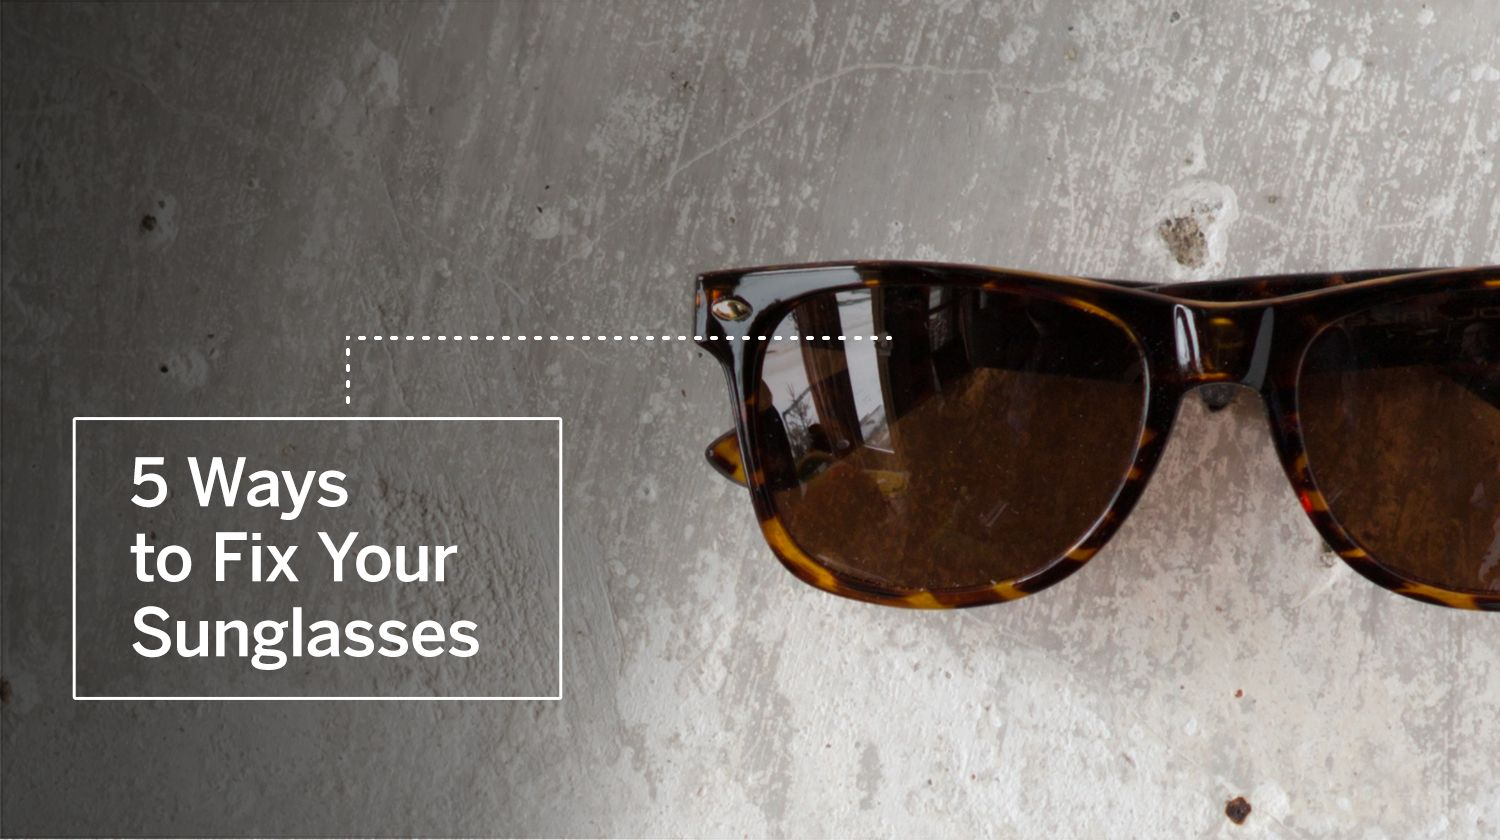 Get tips for keeping your sunglasses in tiptop shape